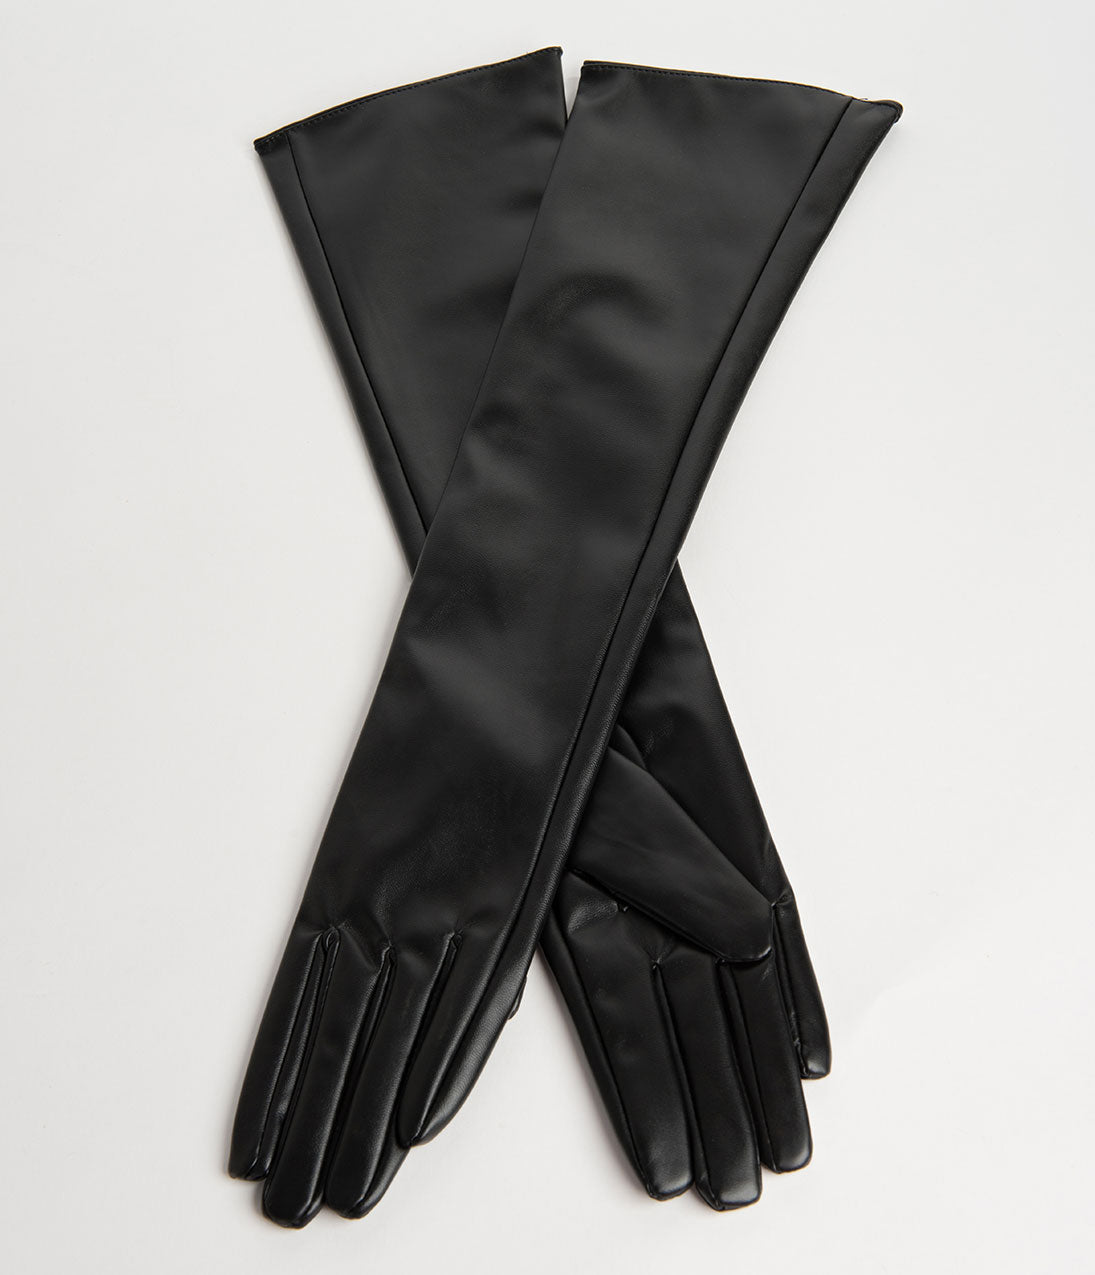 Vintage Style Gloves- Long, Wrist, Evening, Day, Leather, Lace Vintage Style Black Leatherette Opera Gloves $18.00 AT vintagedancer.com